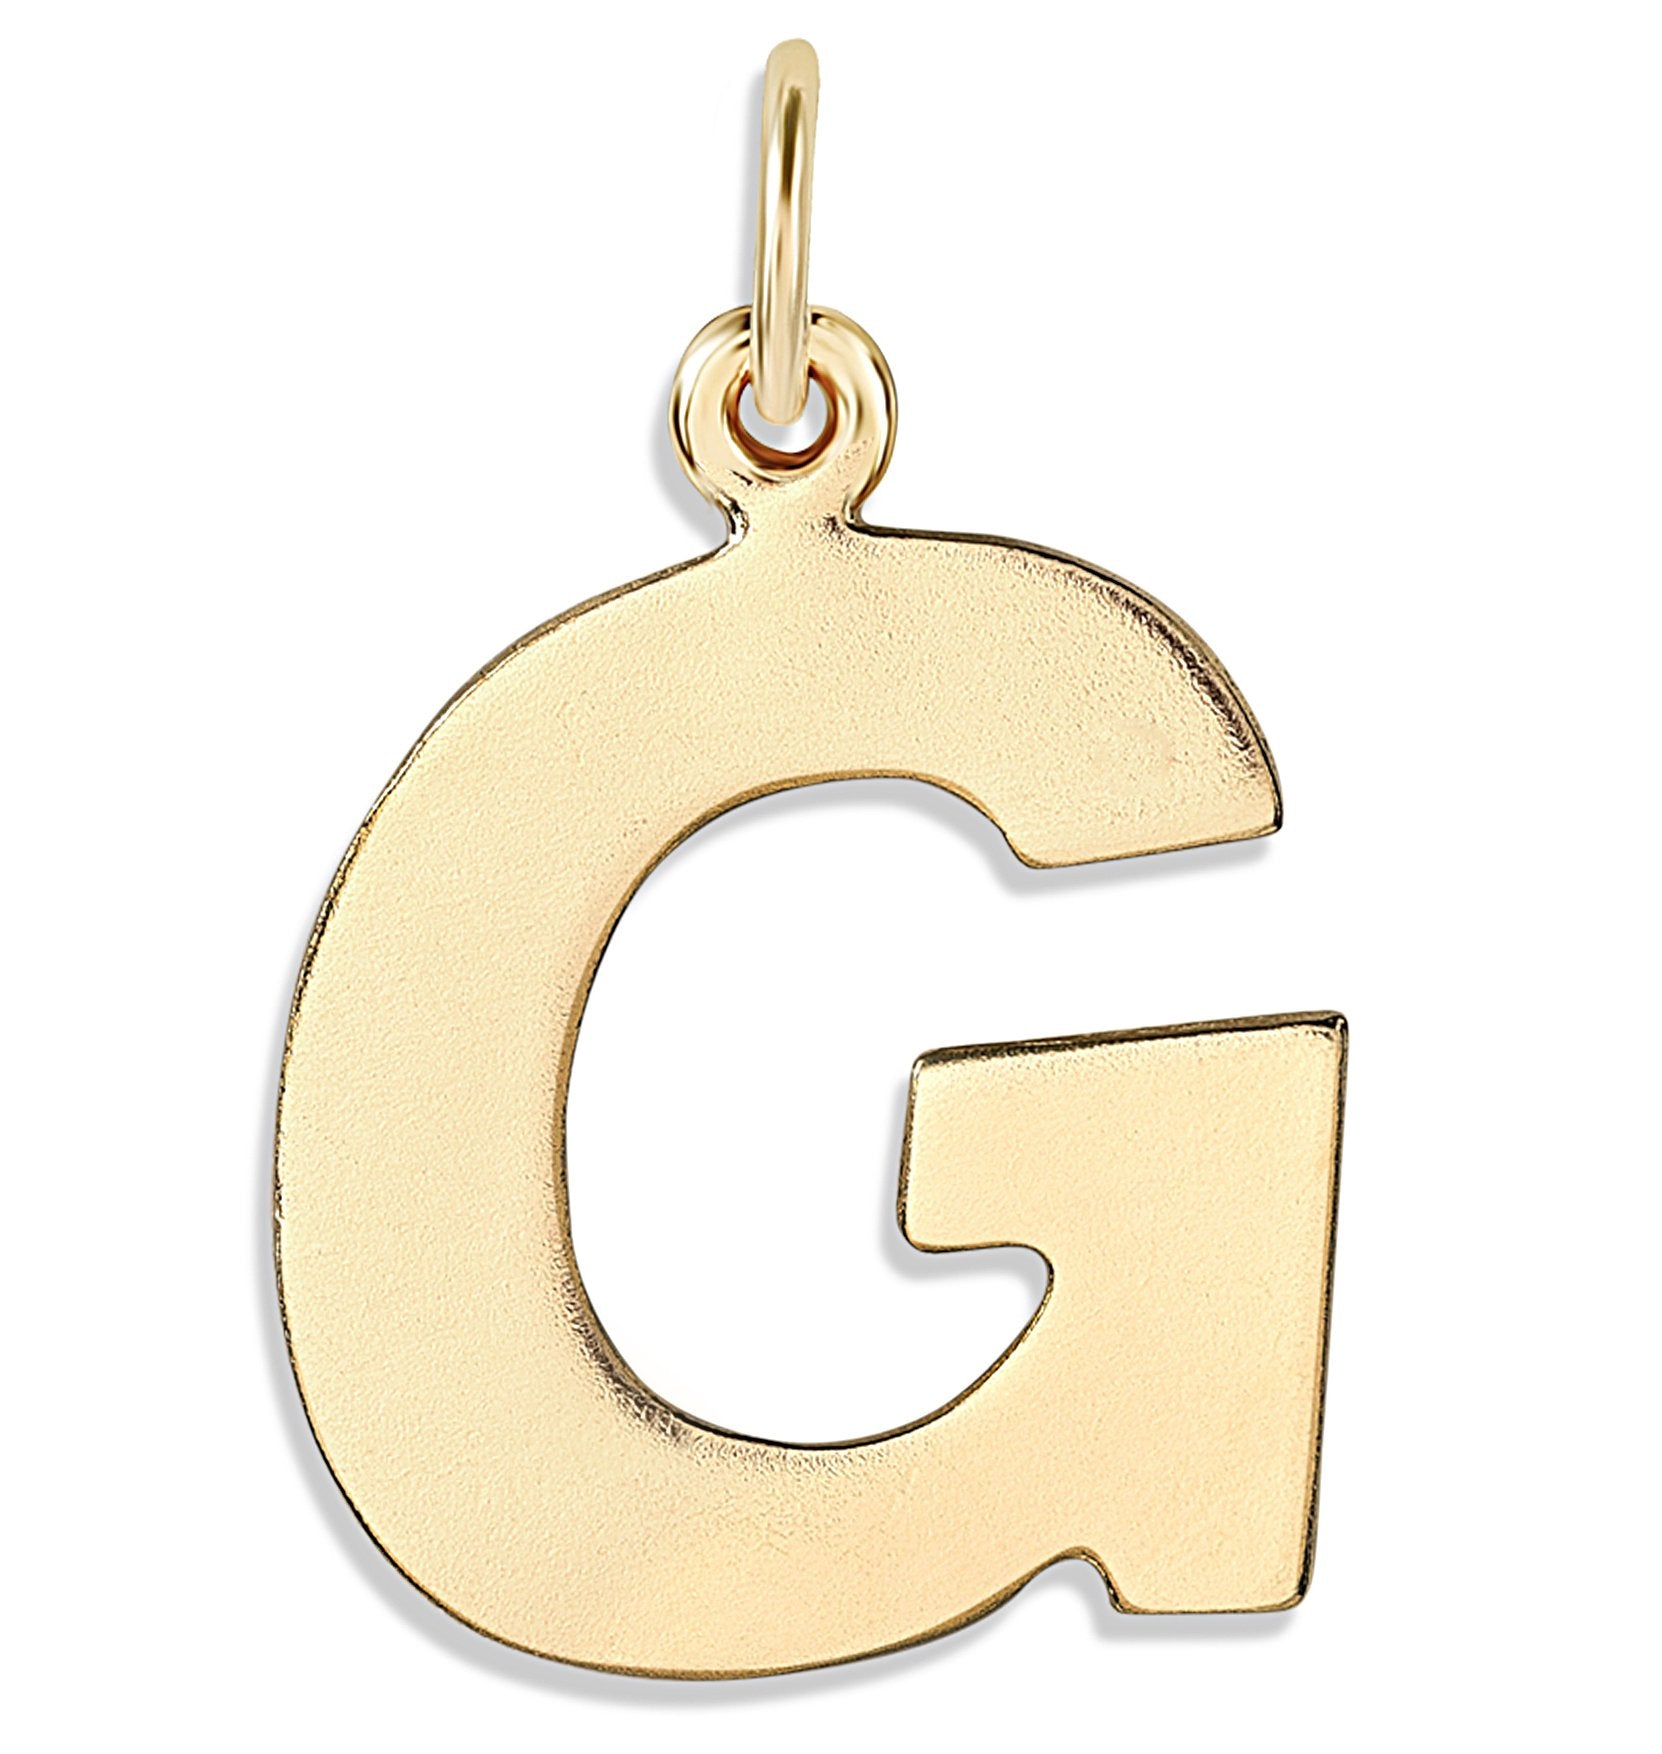 """G"" Cutout Letter Charm 14k Yellow Gold Jewelry For Necklaces And Bracelets From Helen Ficalora Every Letter And Initial Available"